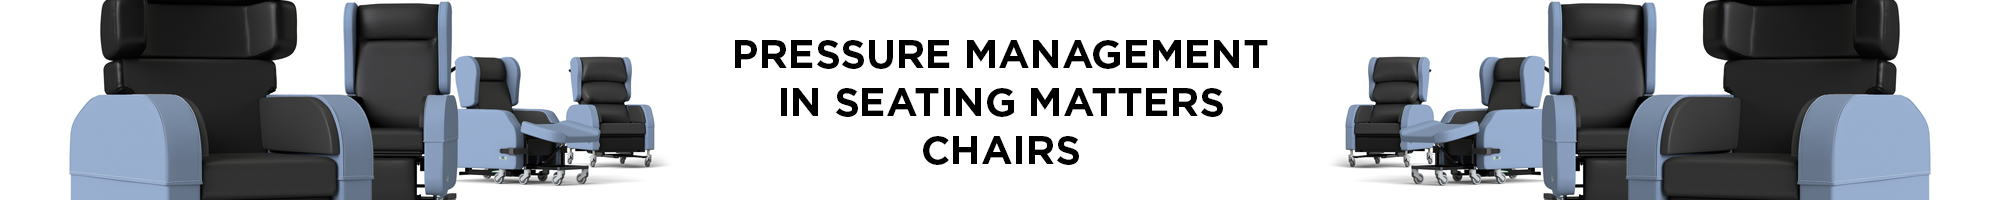 PM In seating matters chairs landing page header.png